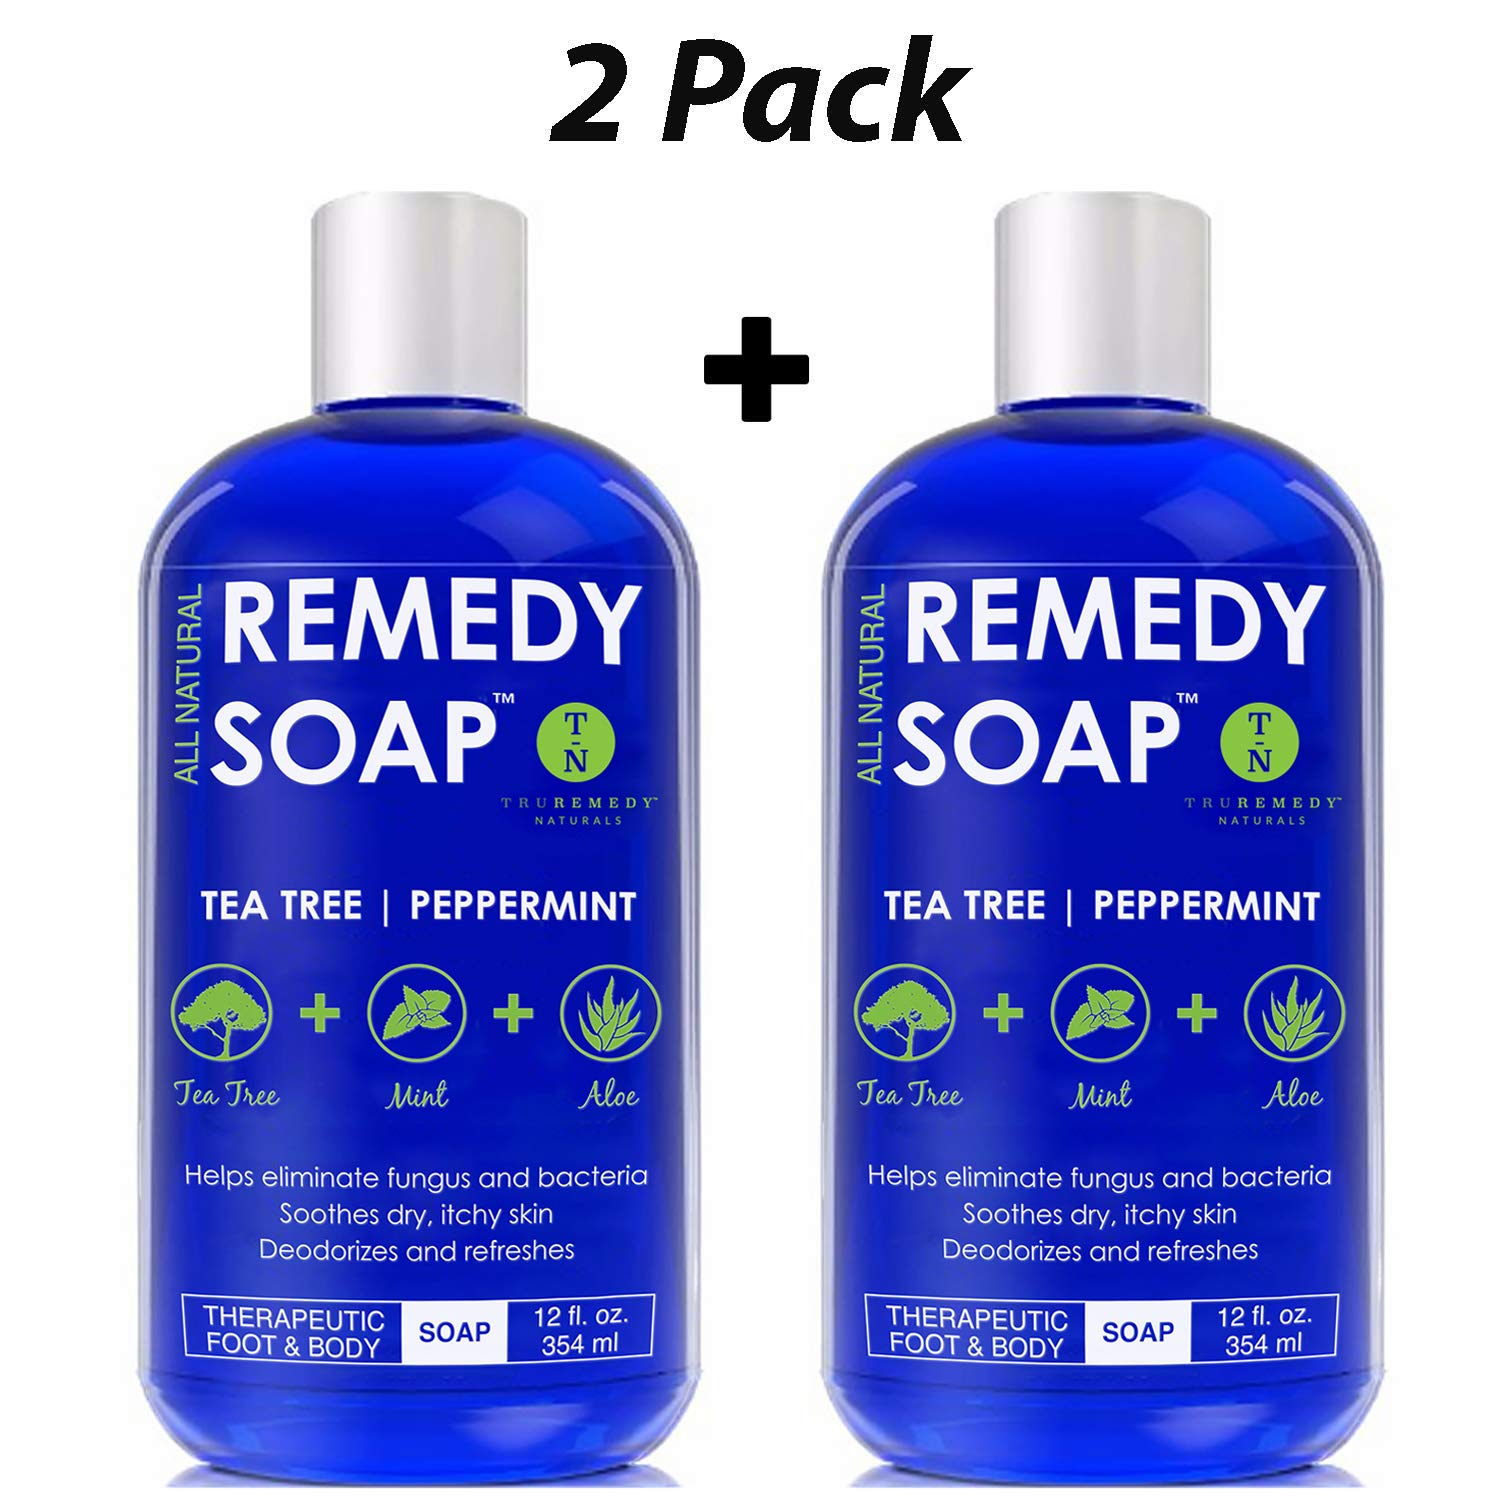 Remedy Soap Pack of 2, Helps Wash Away Body Odor, Sooth Athlete's Foot, Ringworm, Jock Itch, Yeast Infections and Skin Irritations. 100% Natural with Tea Tree Oil, Mint & Aloe 12 oz by Truremedy Naturals